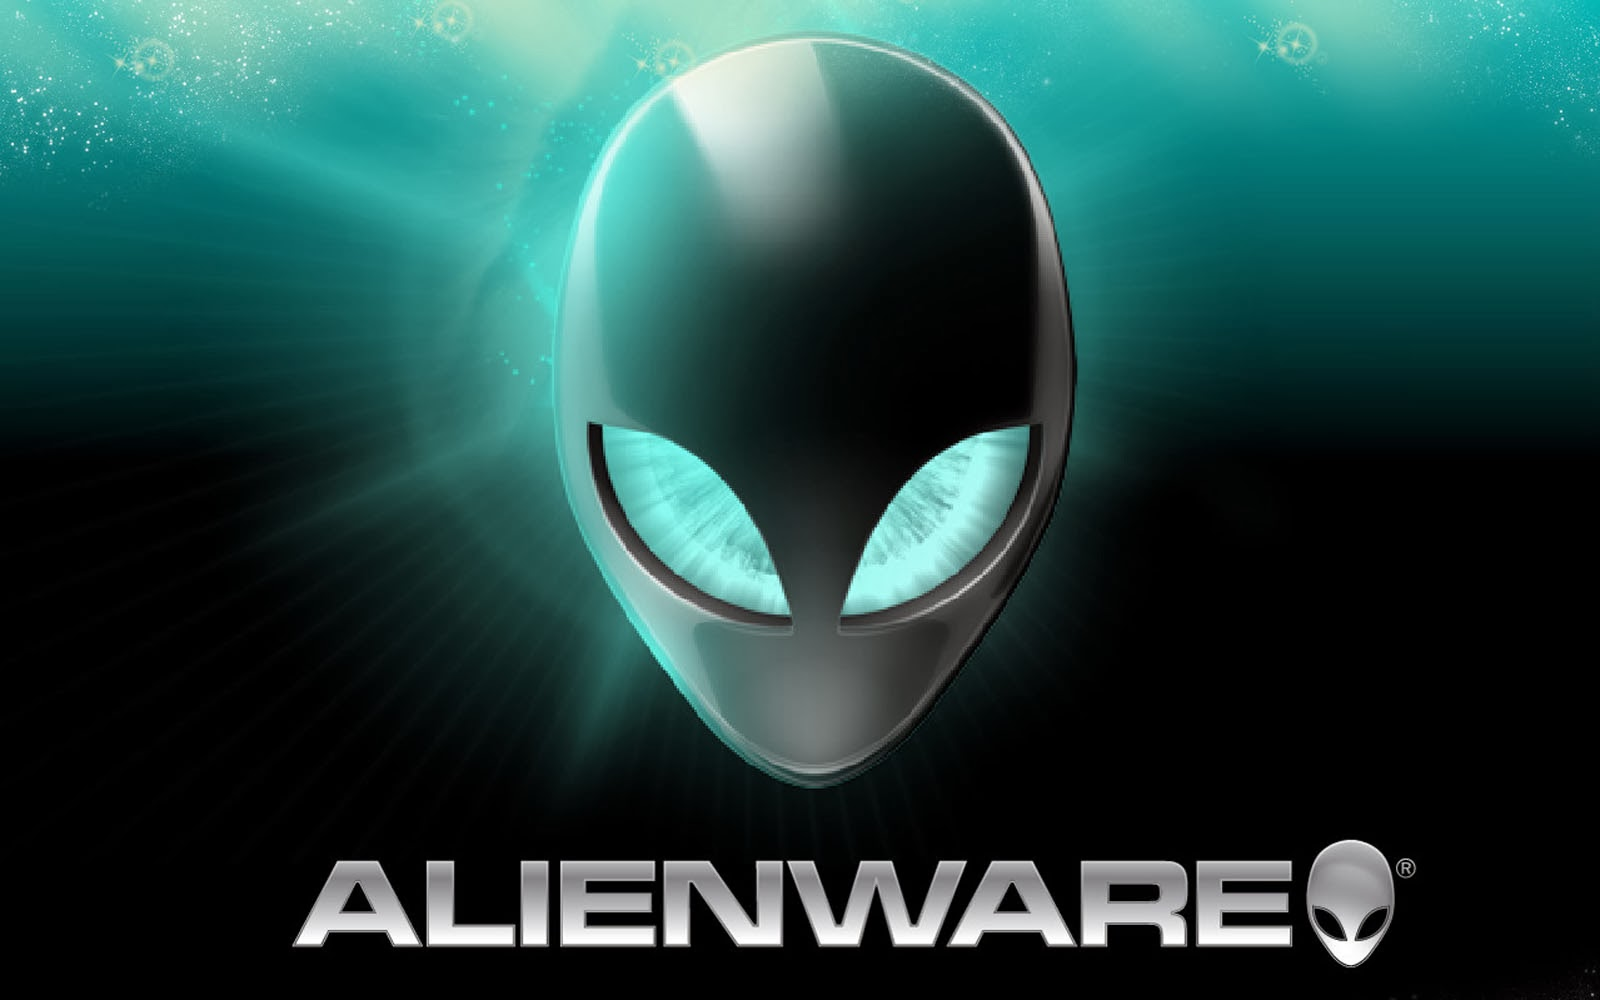 Car Wallpapers Hd 2013 Free Download Wallpapers Alienware Backgrounds